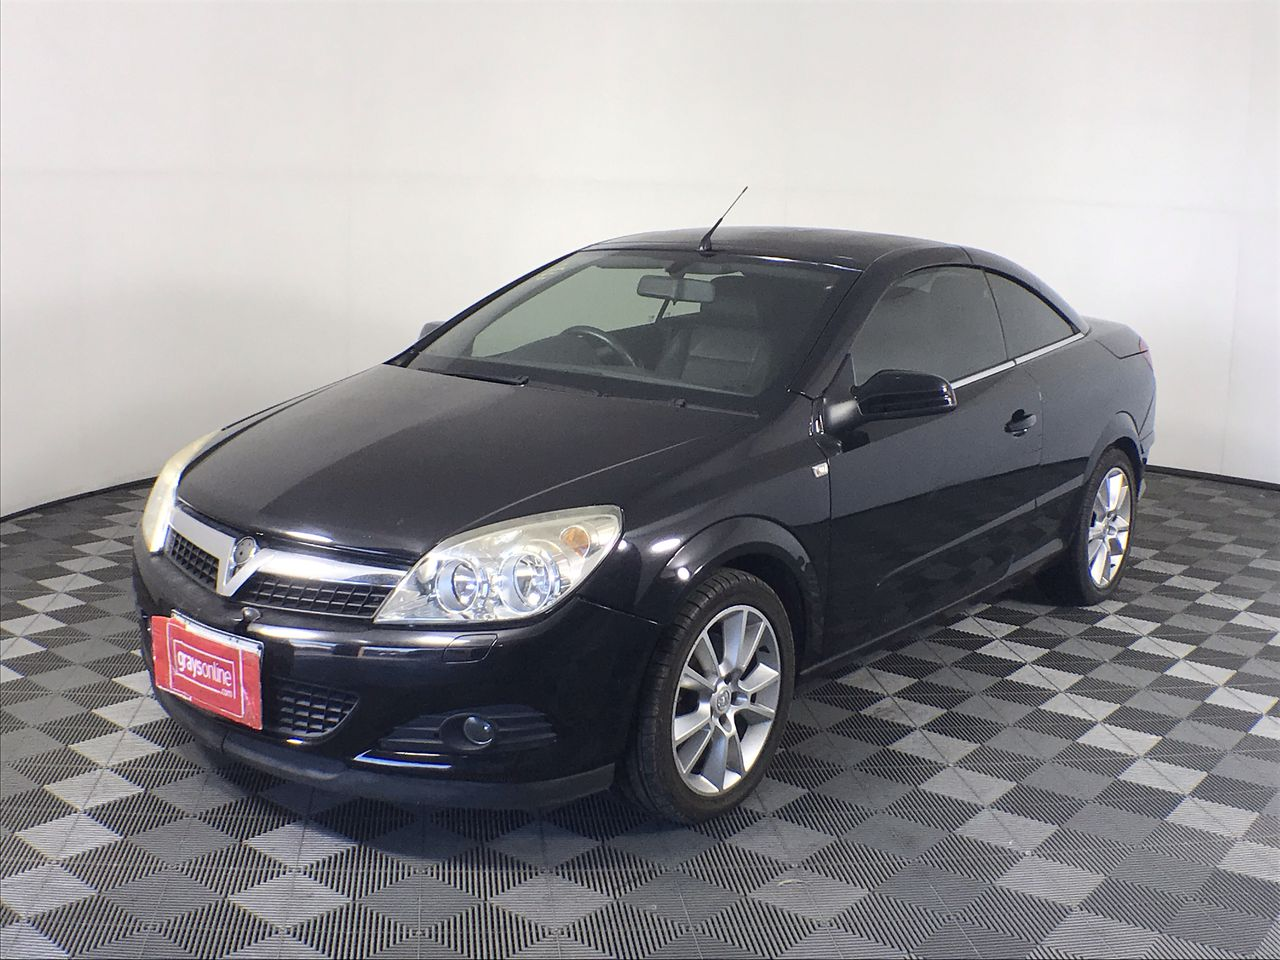 2008 Holden Astra Twin Top Convertible 83,181Kms